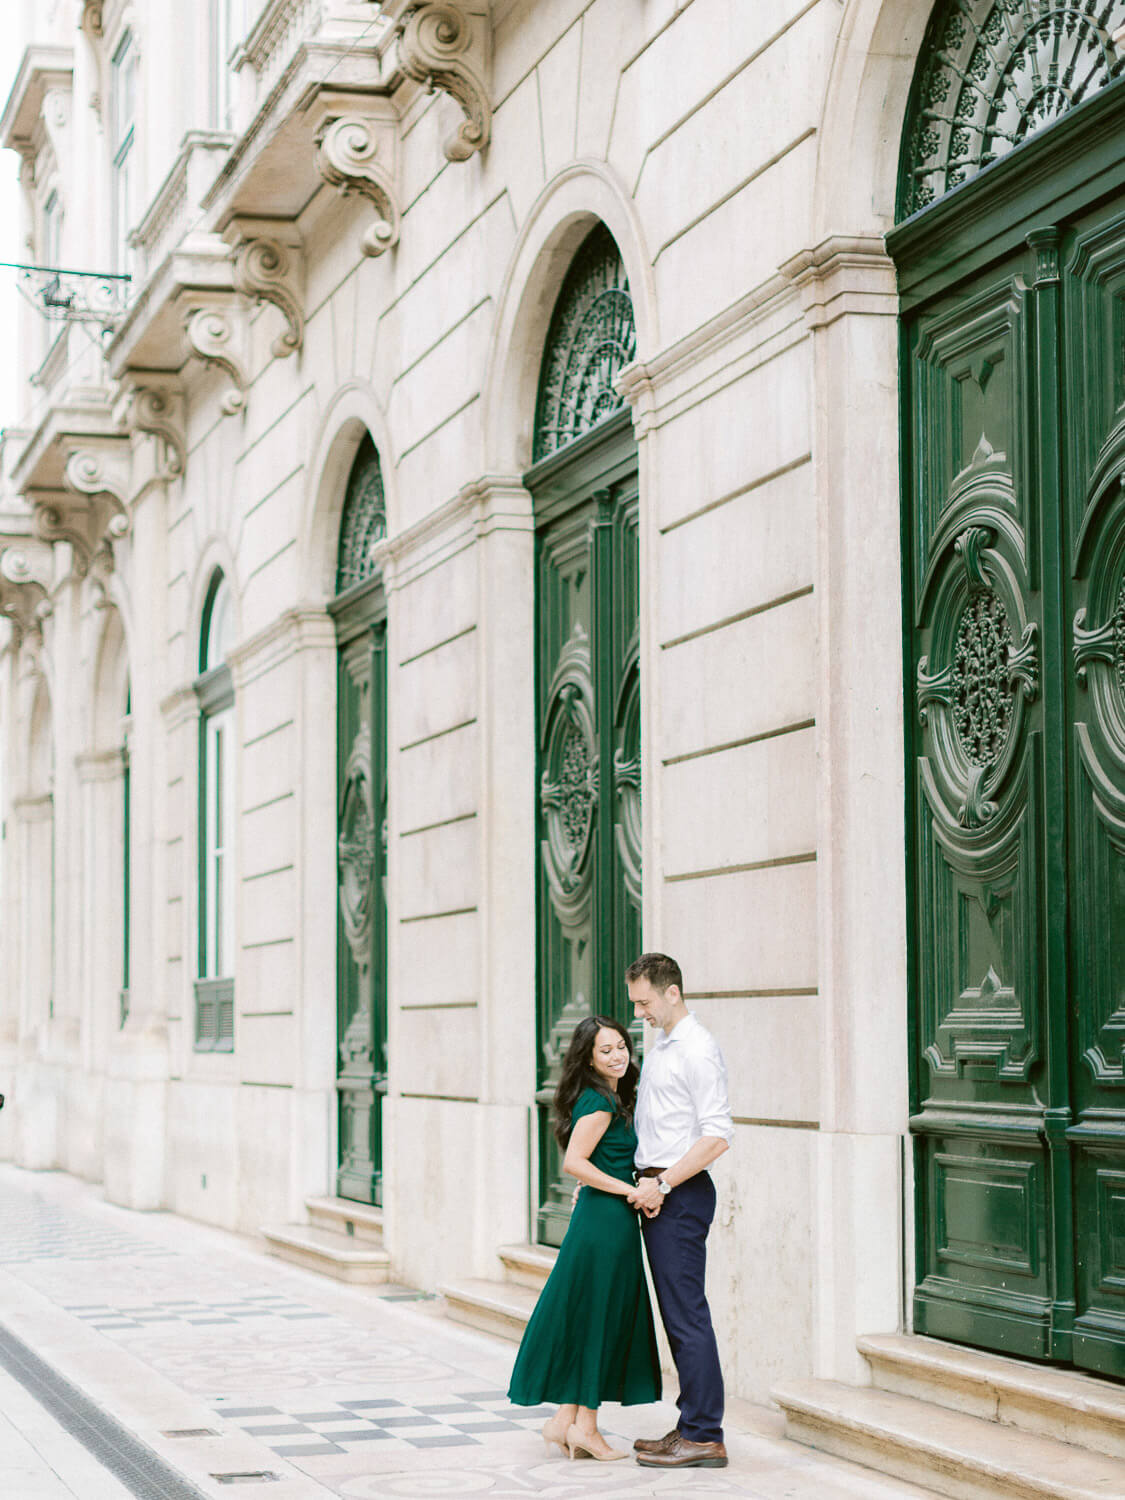 Joyful couple during engagement in Lisbon with typical Portuguese architecture facade by Portugal Wedding Photographer